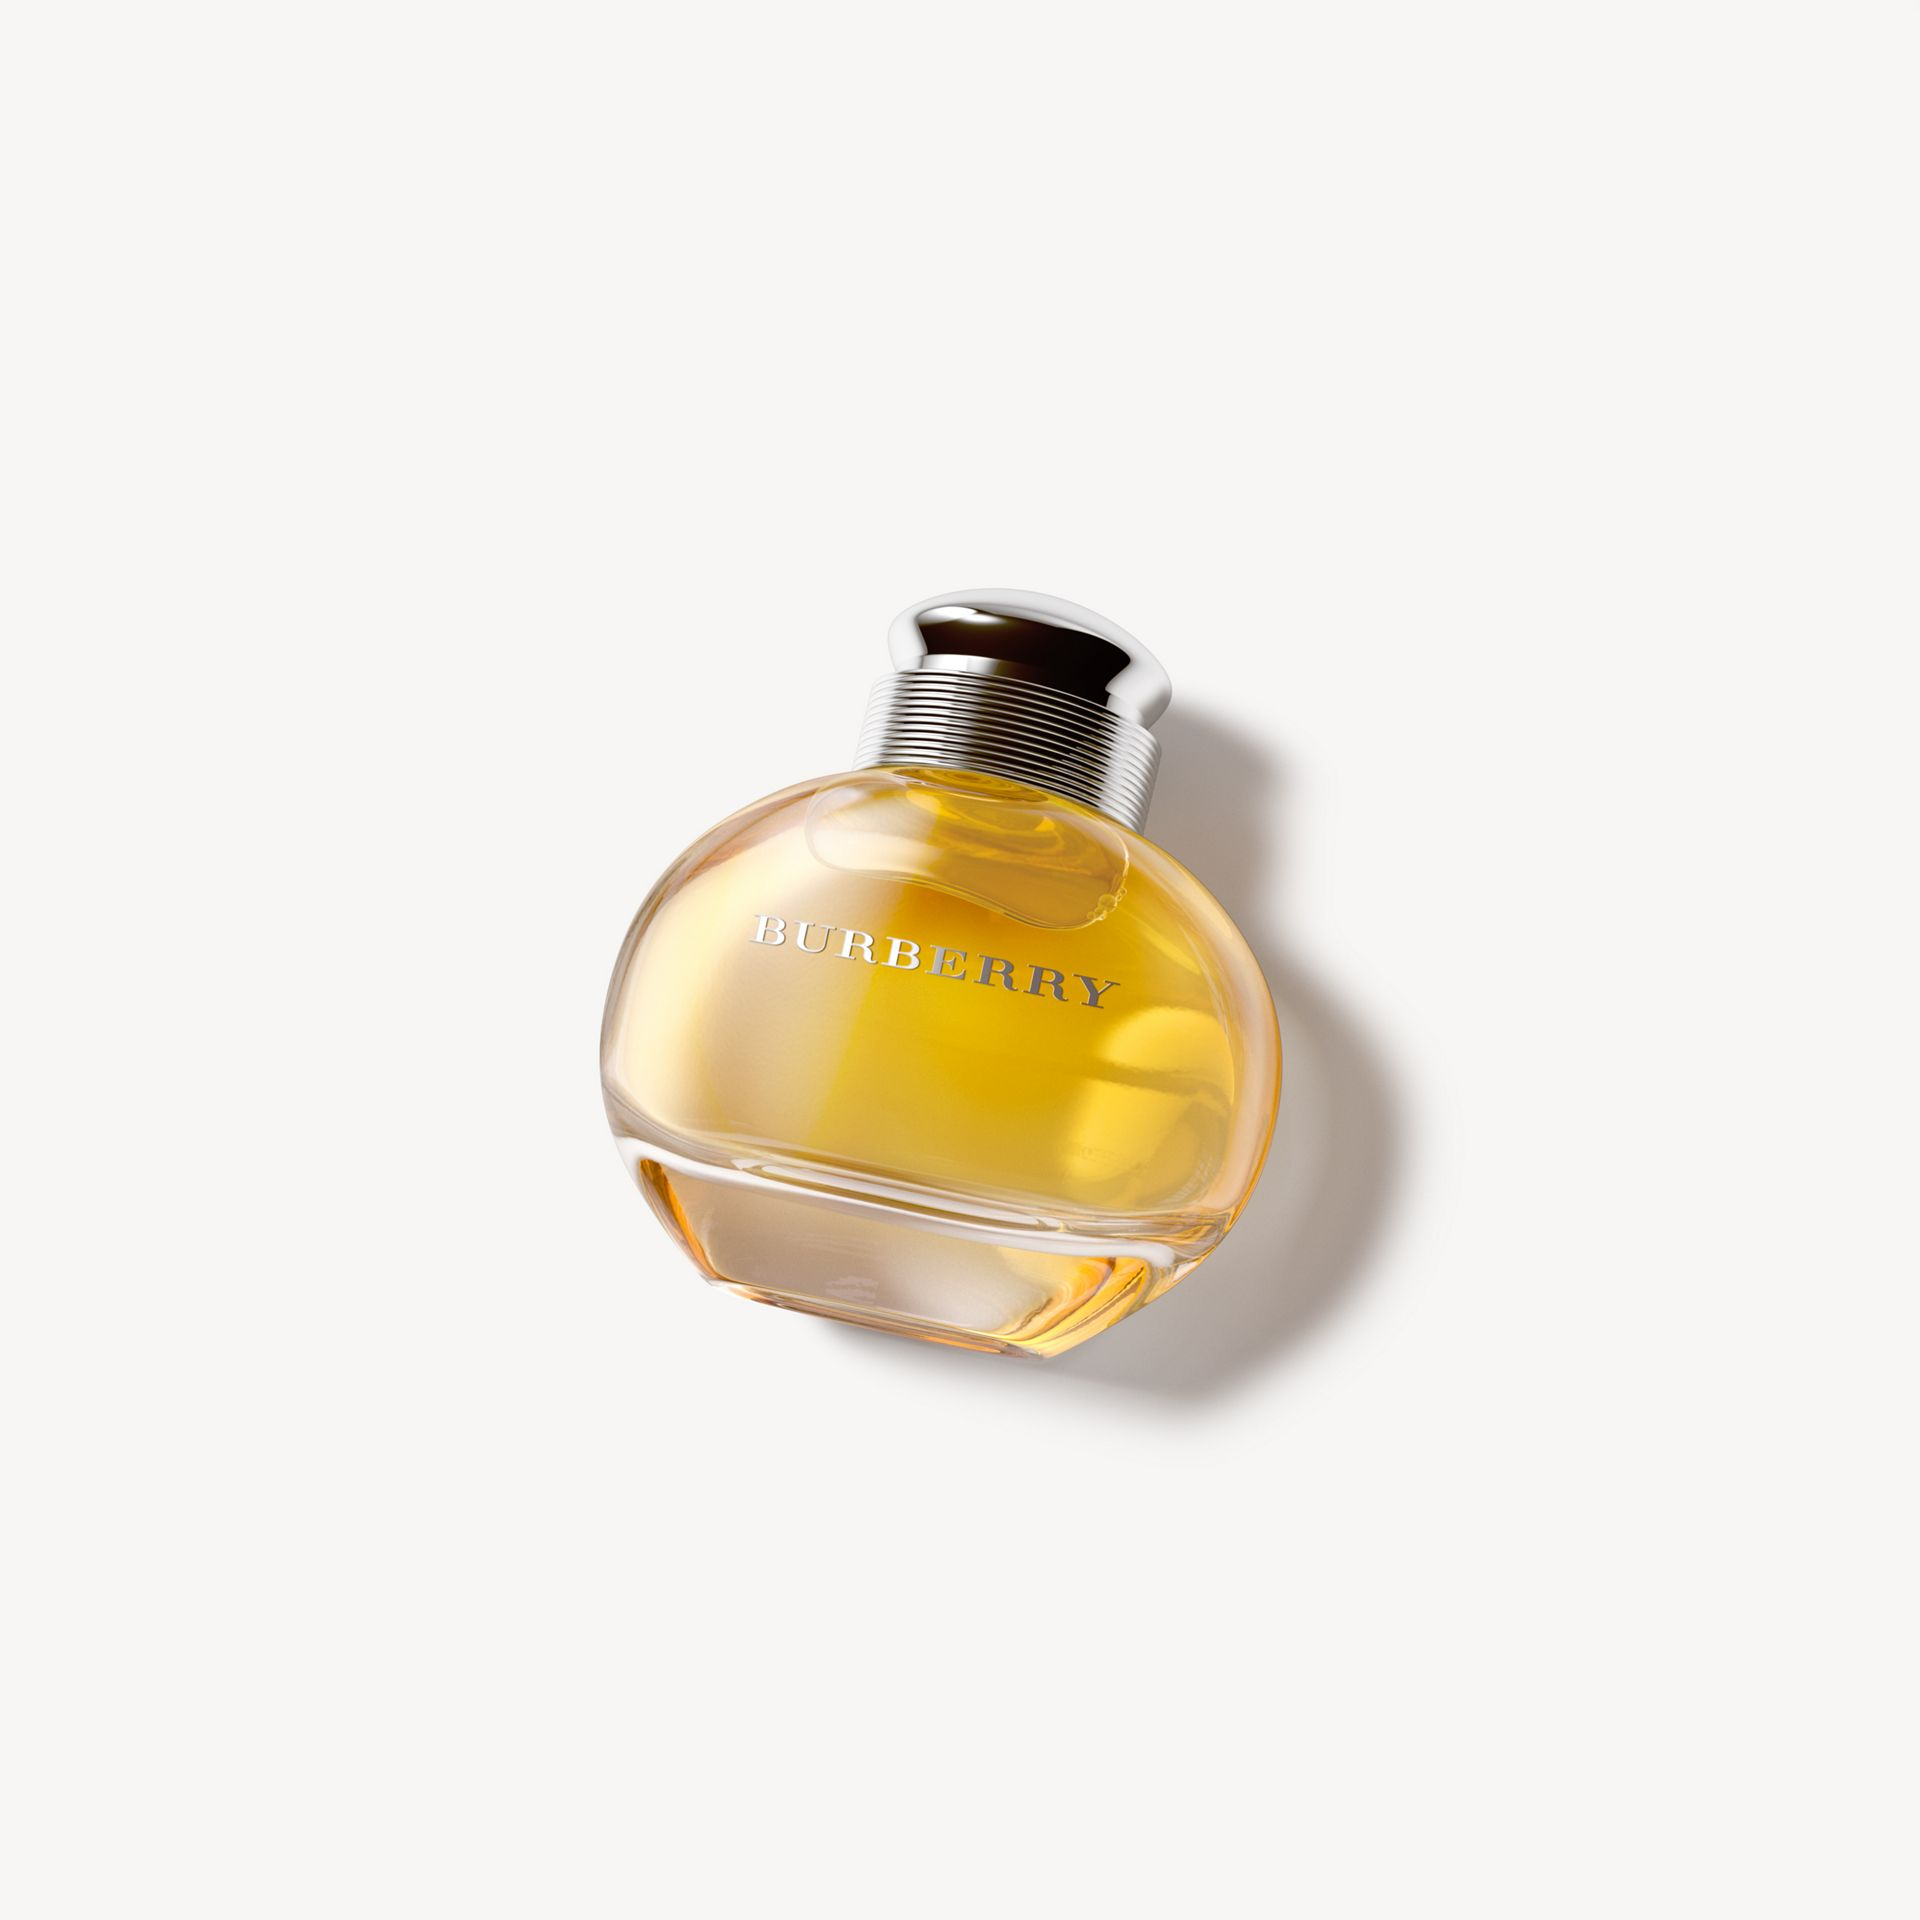 Burberry For Women Eau de Parfum 50ml - Women | Burberry - gallery image 0